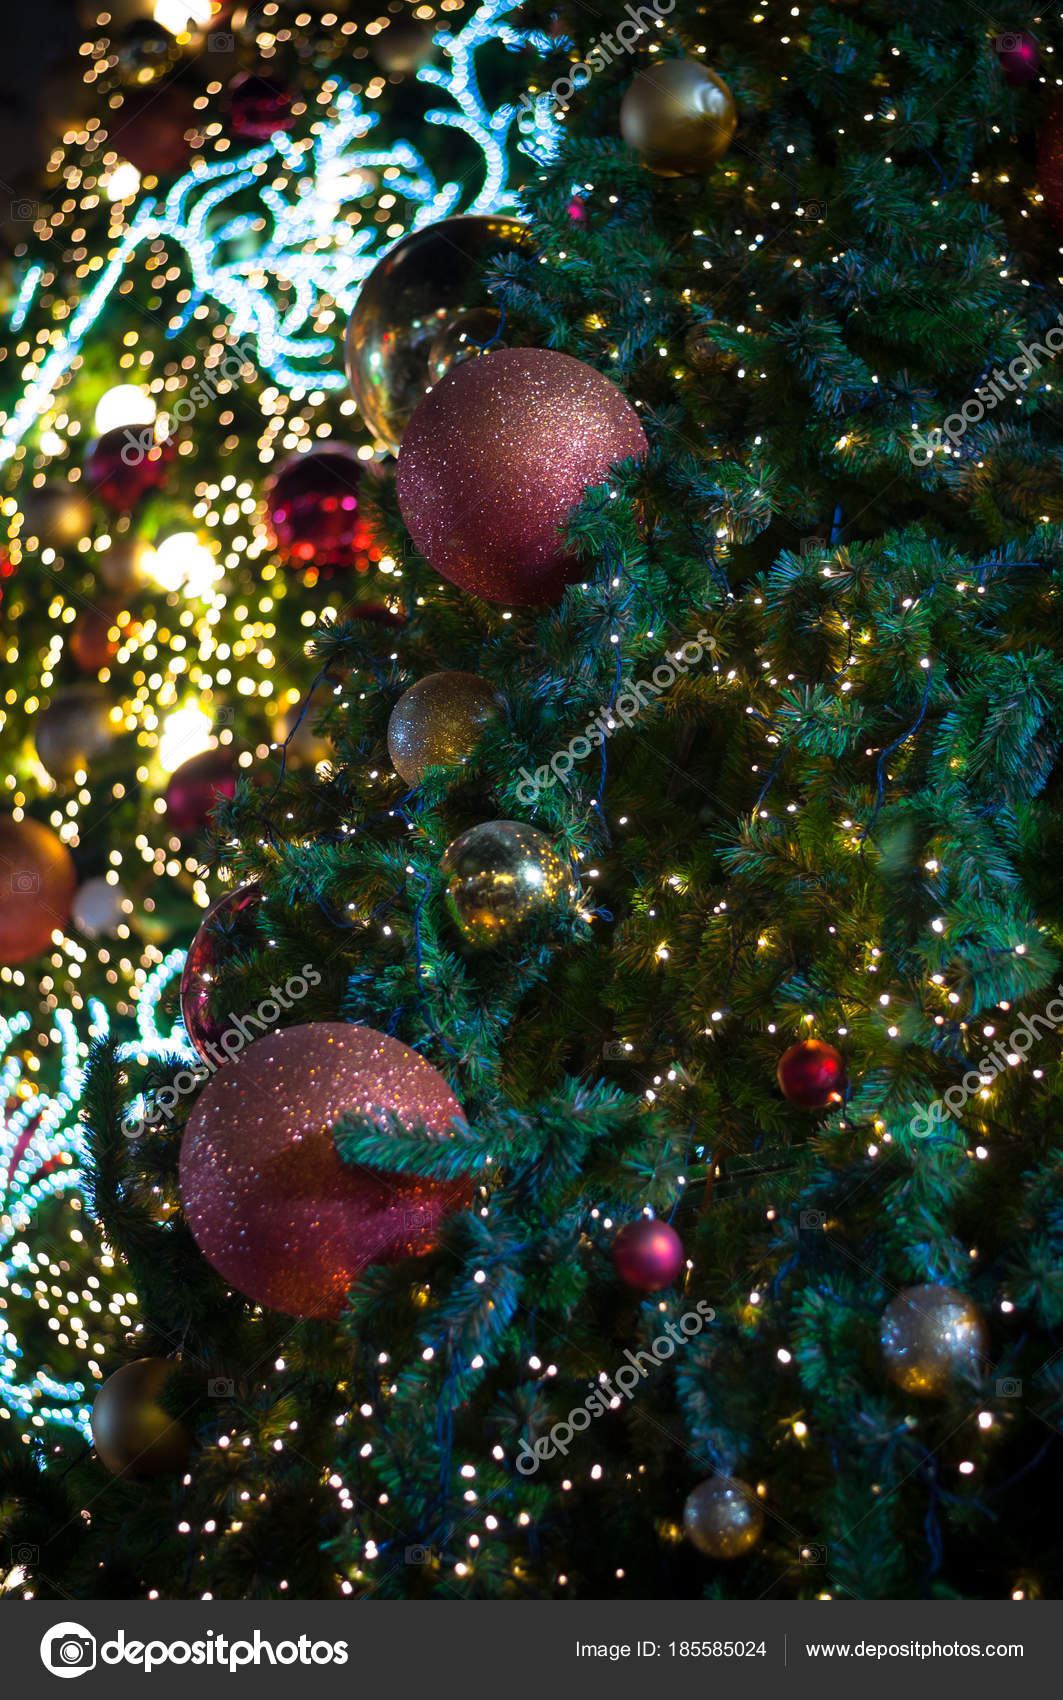 glitter red ball celebrate christmas on tree with wire white light vignette background photo by superfroydclubgmailcom